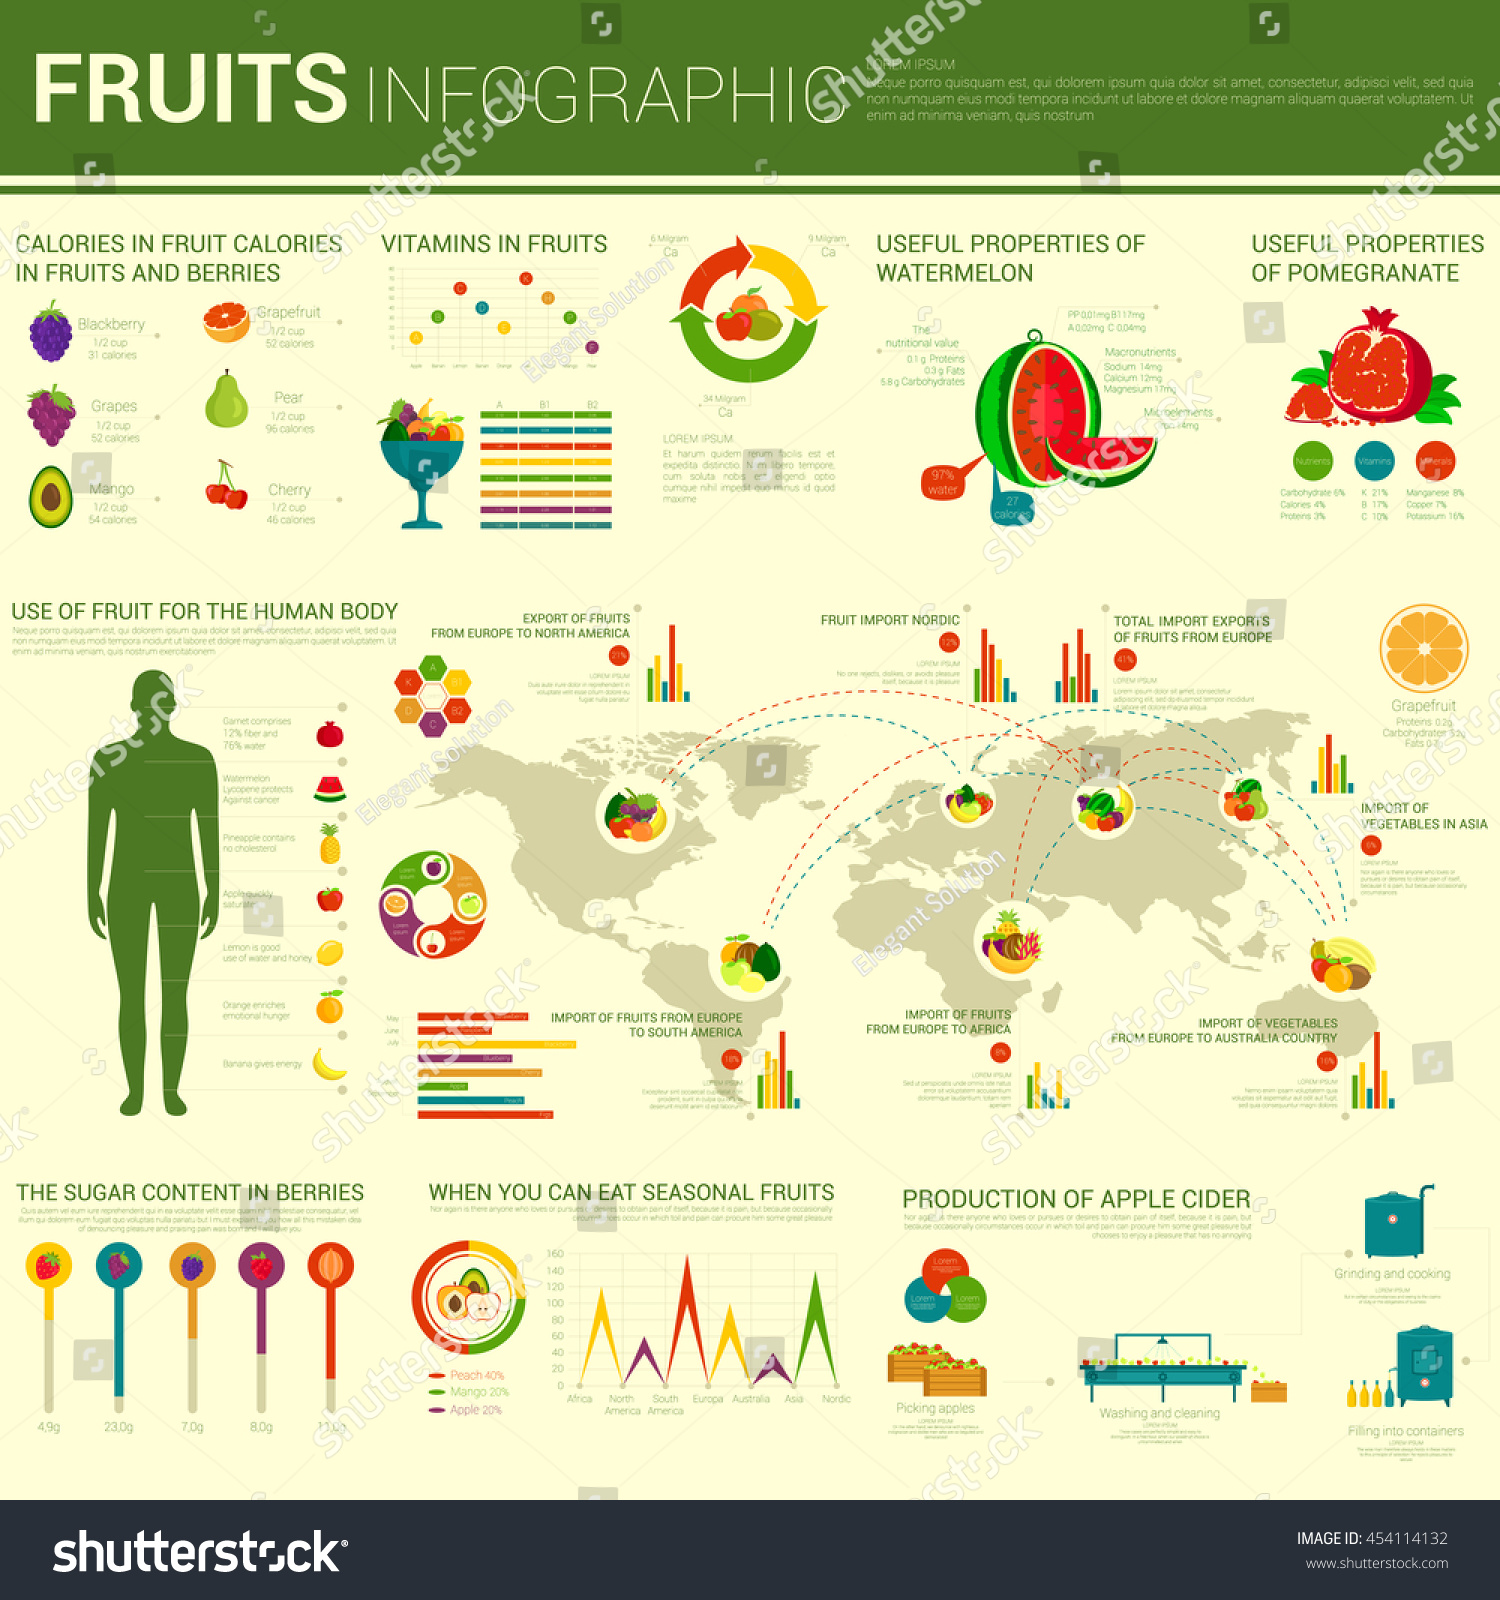 Fruits infographic design charts world map stock vector 454114132 fruits infographic design with charts and world map berries as blackberry and cherry grapes nvjuhfo Choice Image